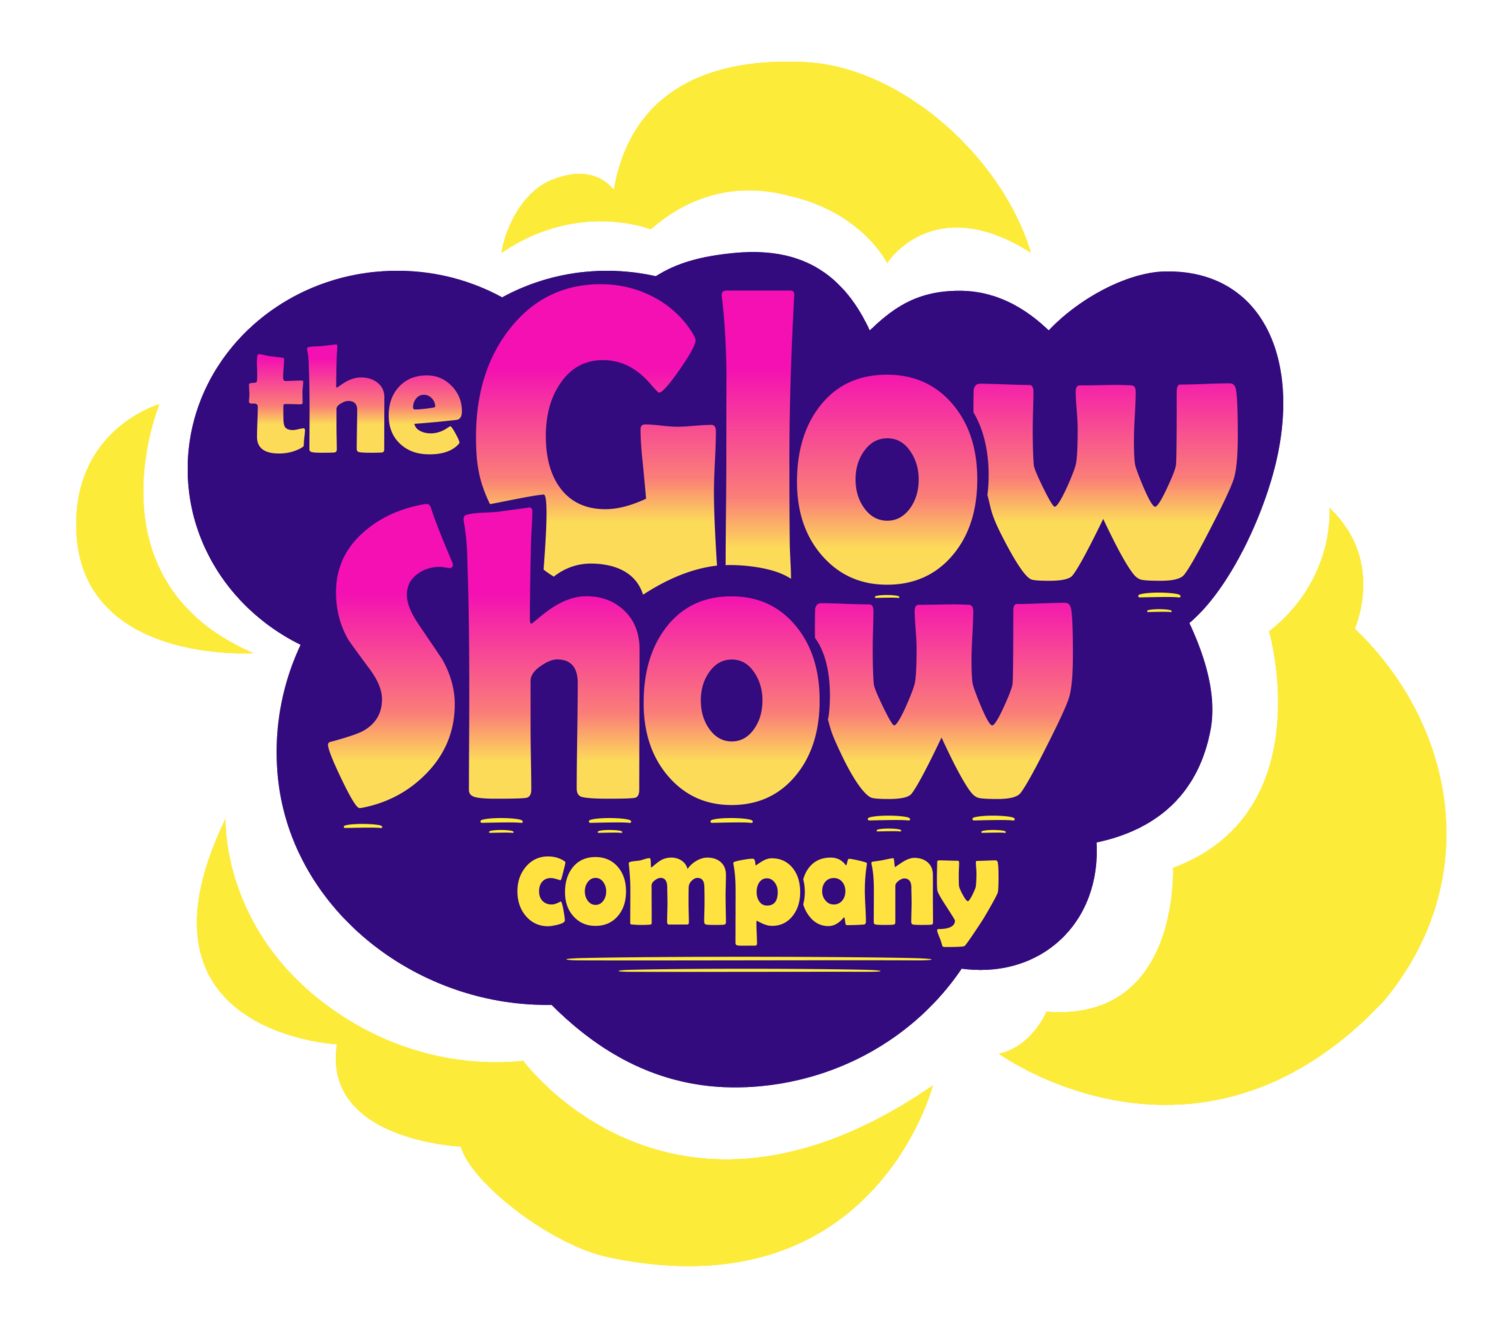 The Glow Show Company